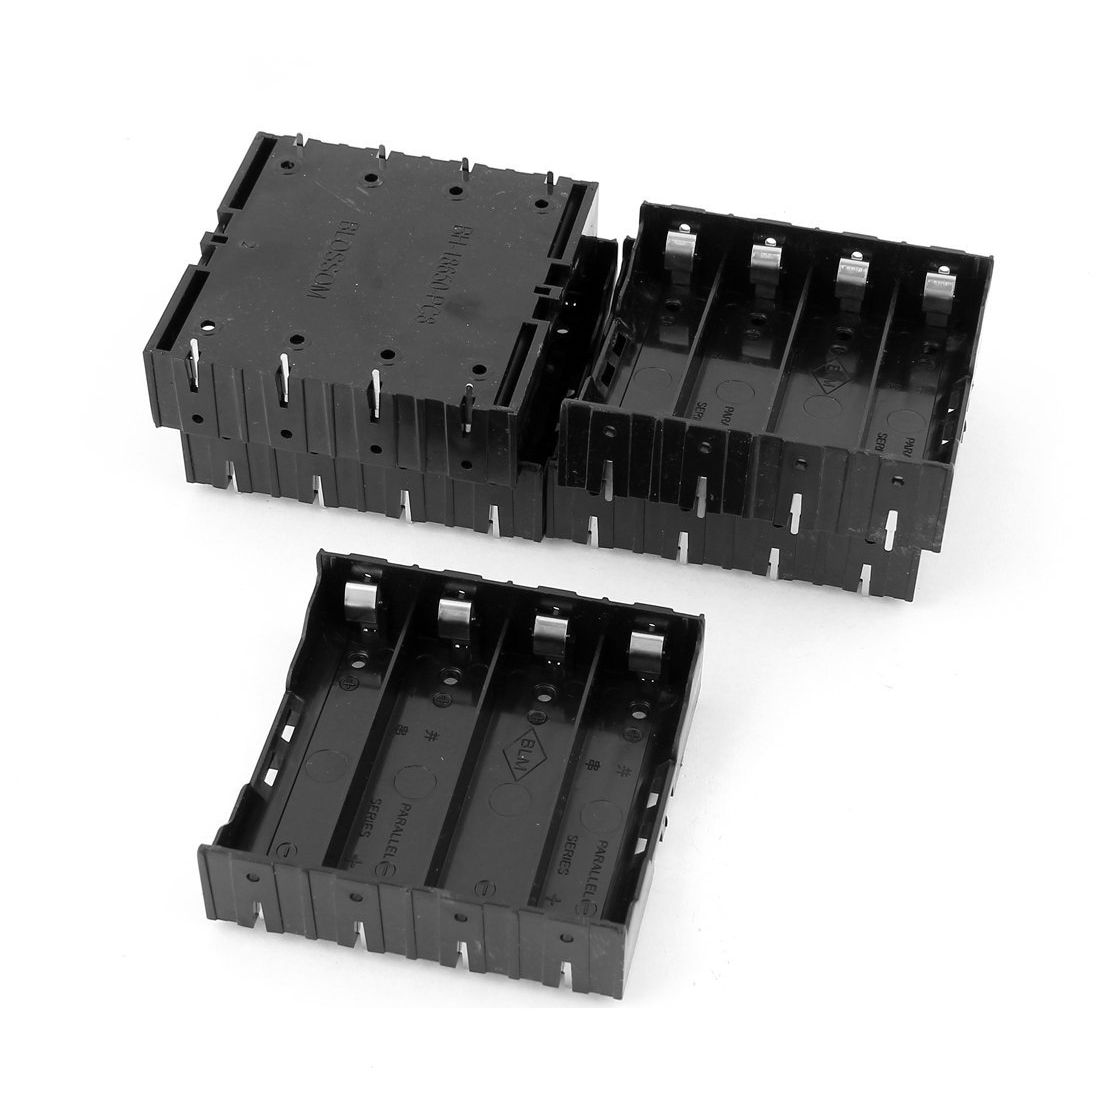 EDT-5Pcs Li-ion DIY Battery Plastic Case Holder for 4x3.7V 18650 Battery фен braun hd 350 1900вт черный